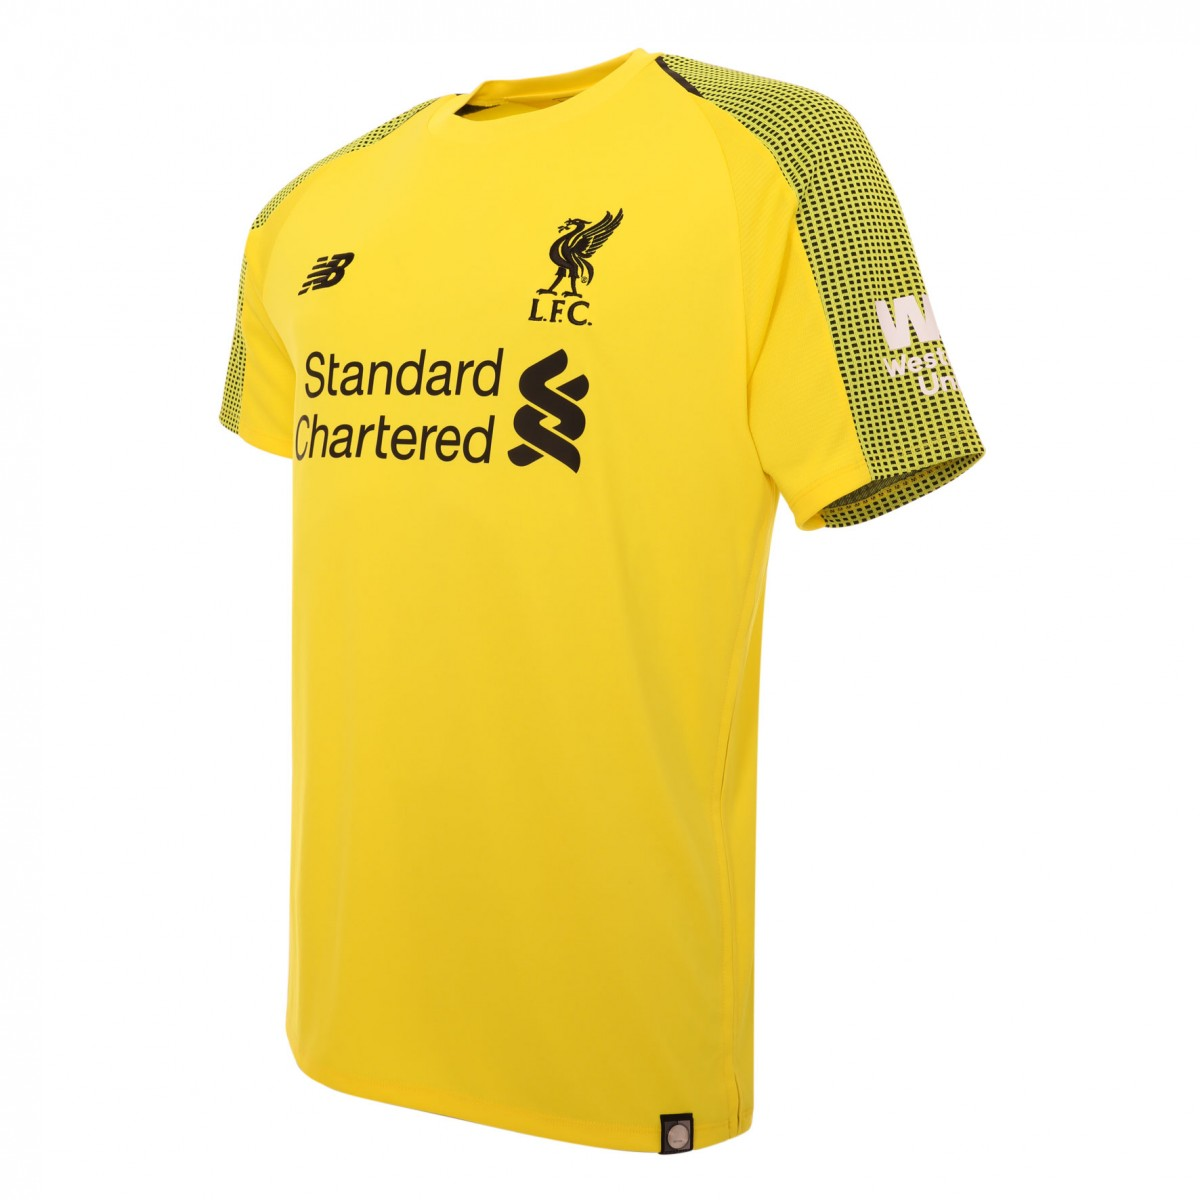 de71b9b9479 Liverpool 2018-2019 Home Short Sleeve Goalkeeper Shirt (Kids)  JT839003  -   58.76 Teamzo.com